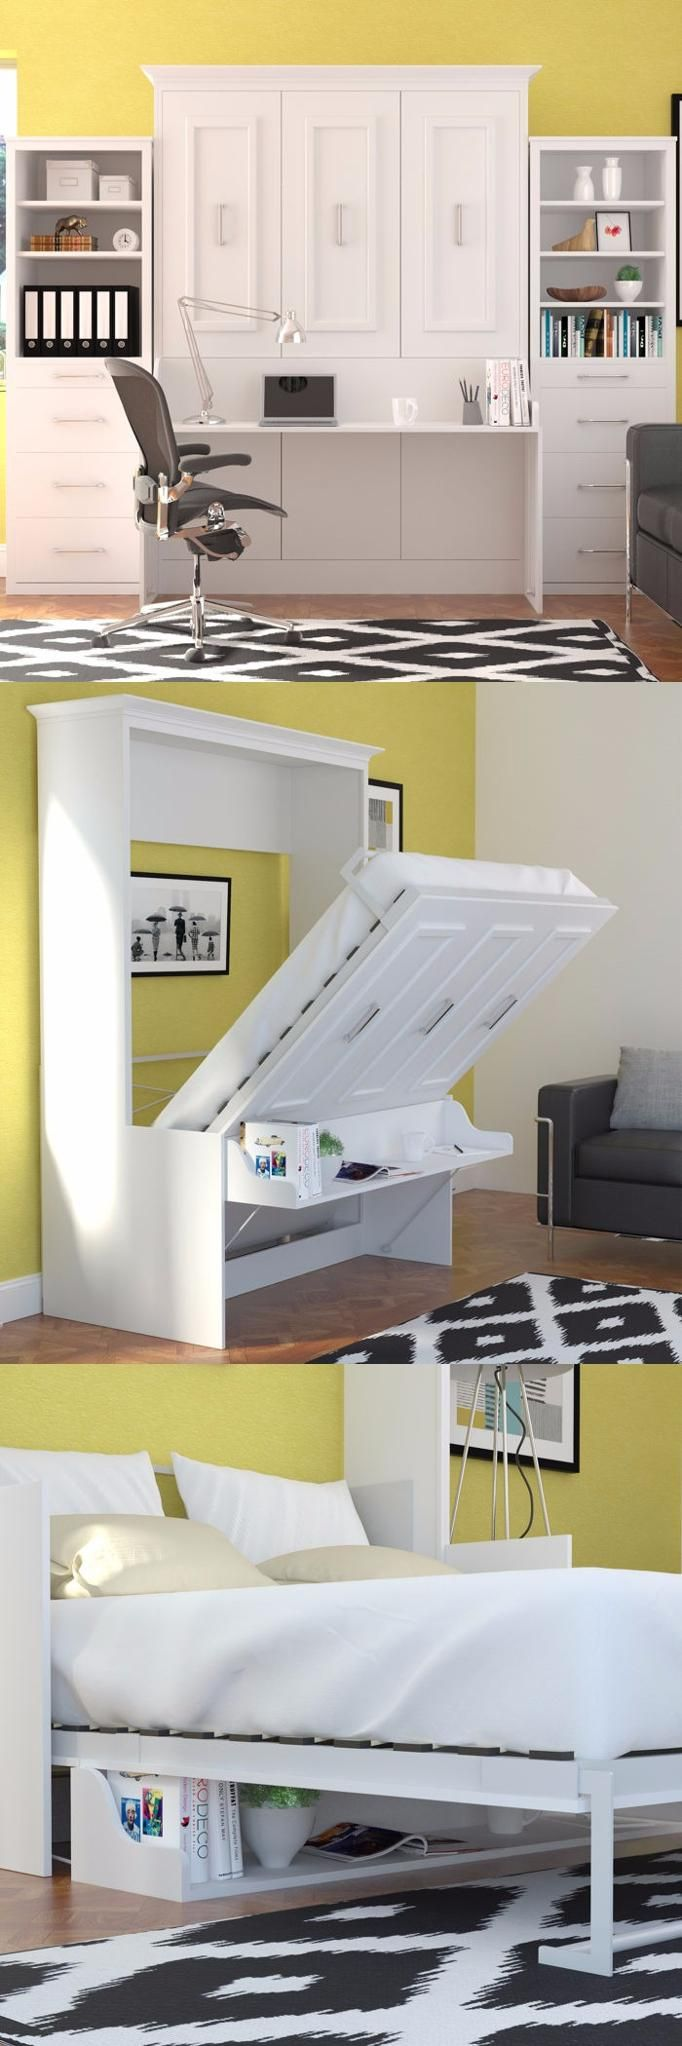 Murphy PullDown Bed with a Bonus PullDown Table